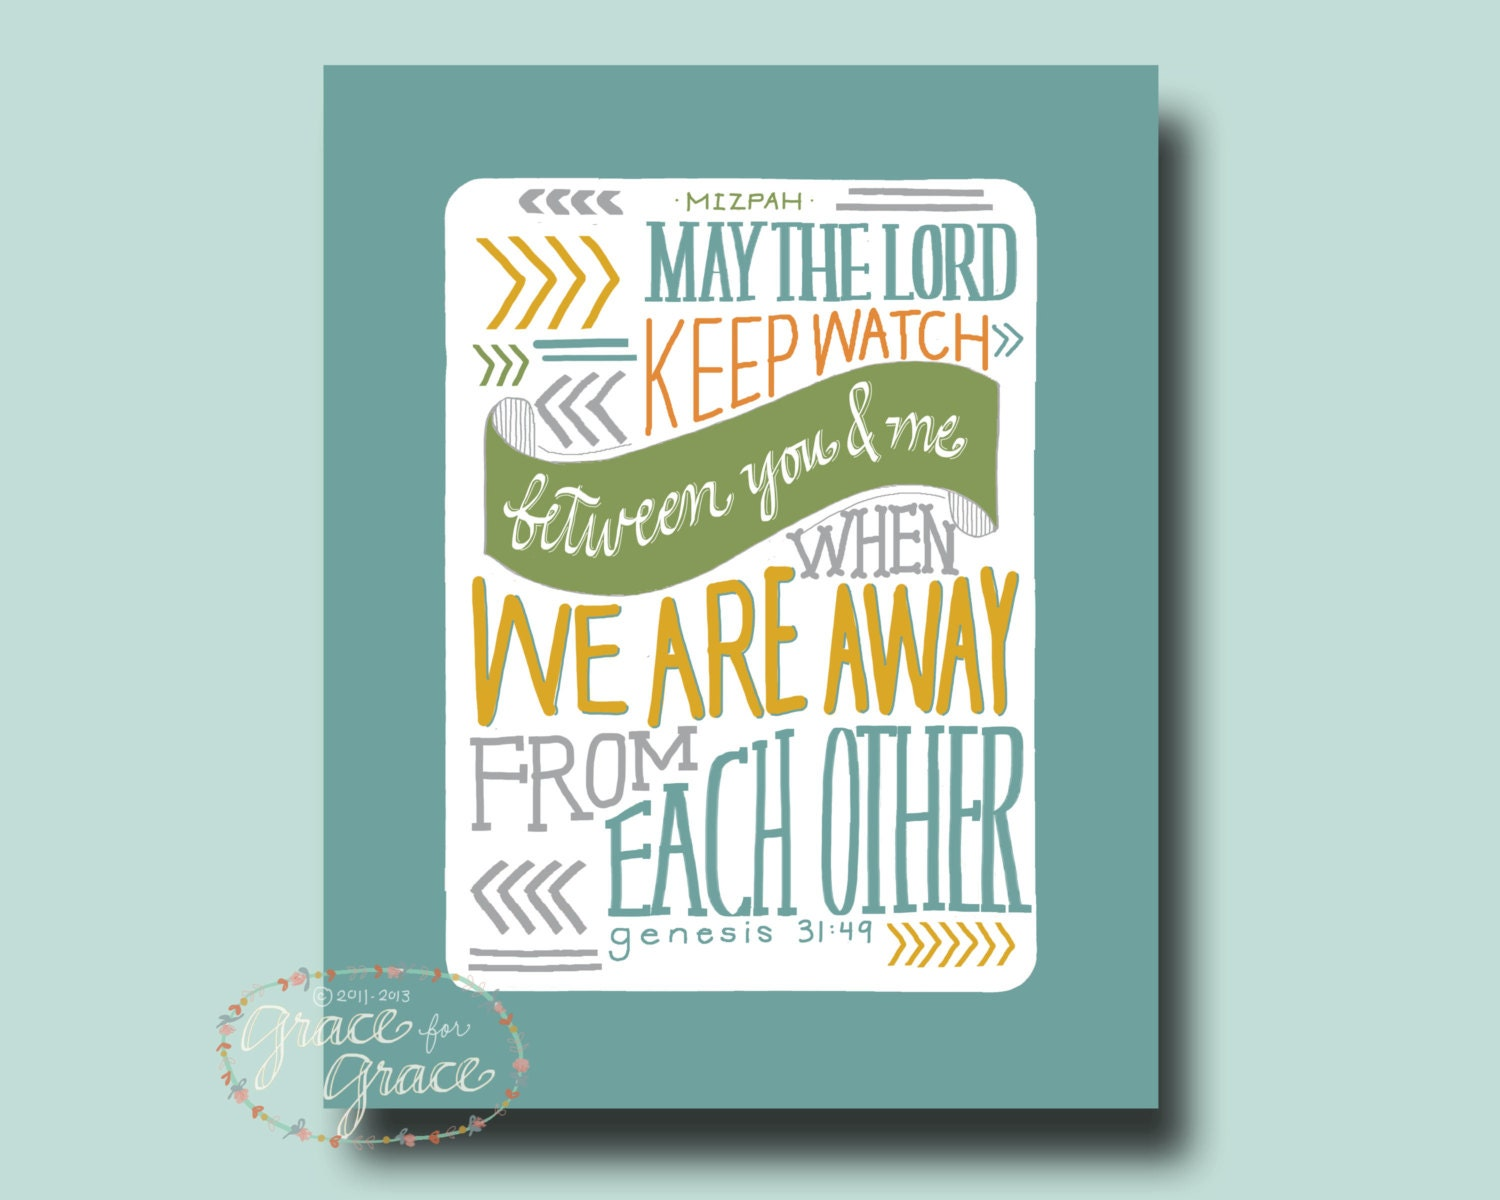 8x10 Fine Art Giclee Print- May the Lord Keep Watch Between You and Me - Hand Typography - Teal, Mustard, Olive, Grey - graceforgrace